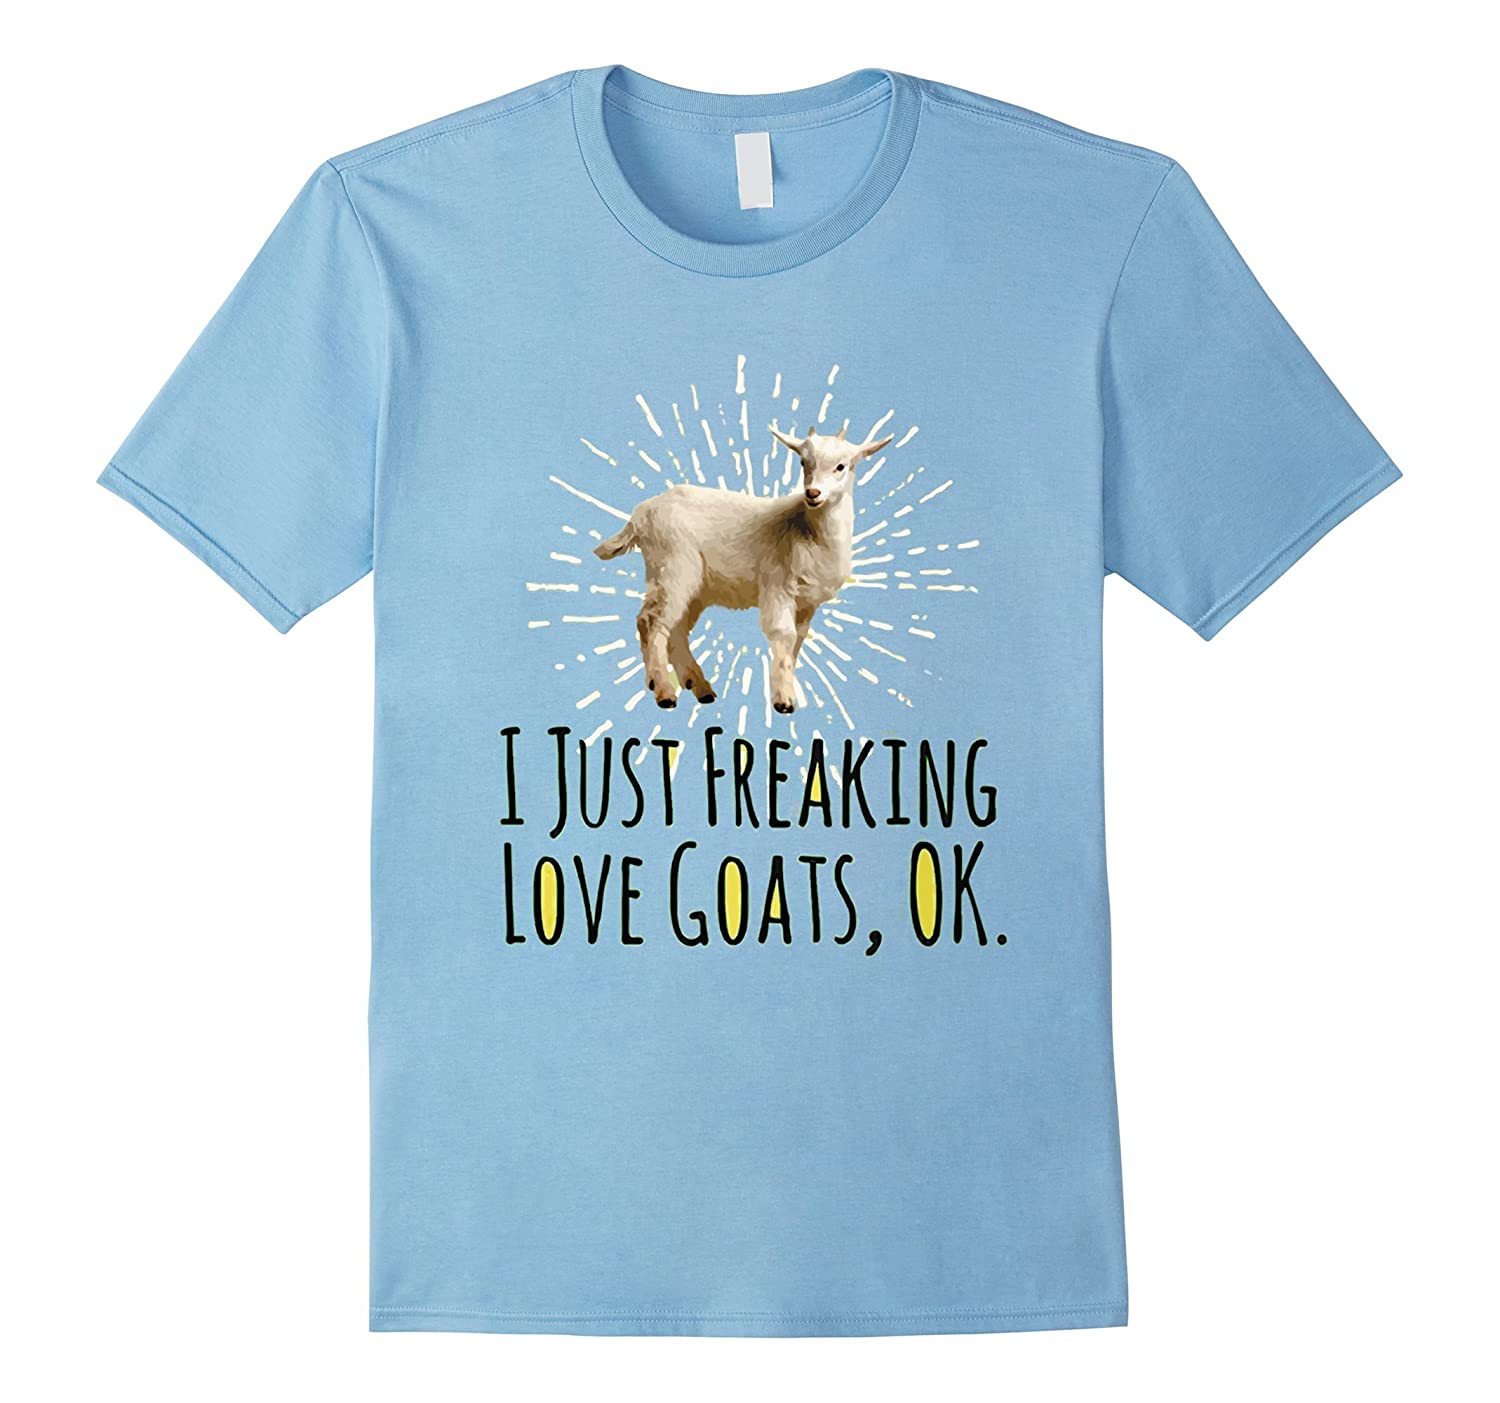 42b3b580b I Just Freaking Love Goats Ok Funny Goat Lovers T-Shirt Tee-RT ...